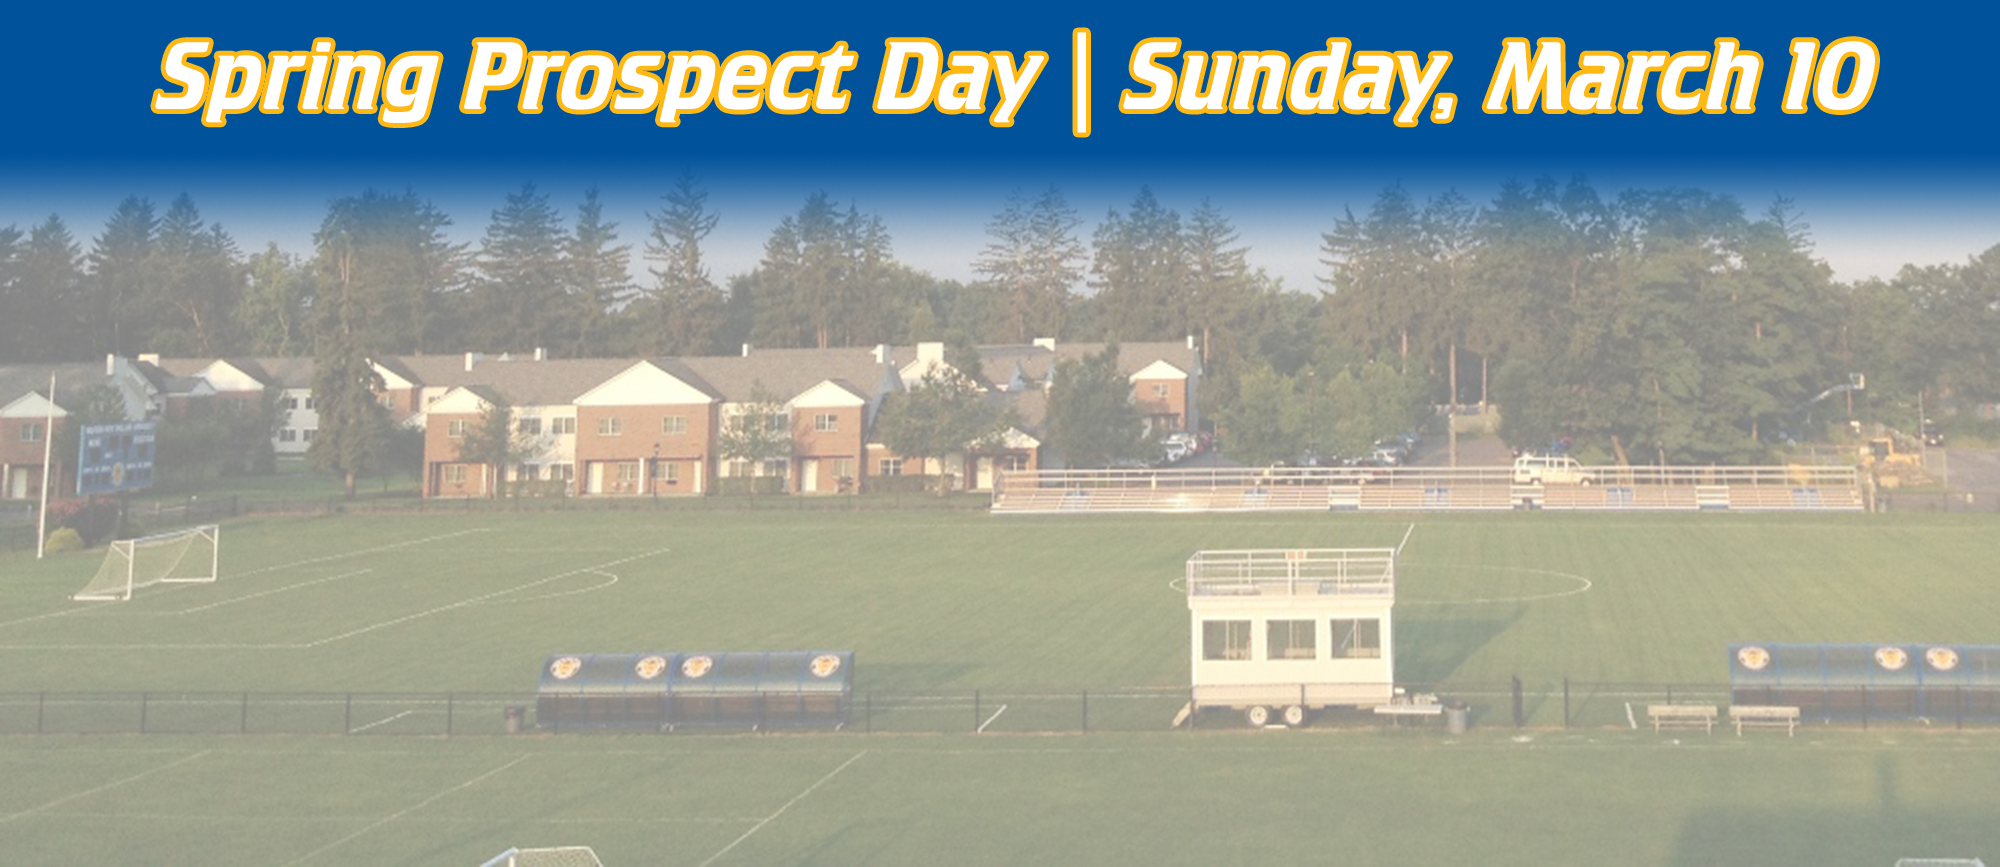 Women's Soccer Spring Prospect Day | Sunday, March 10